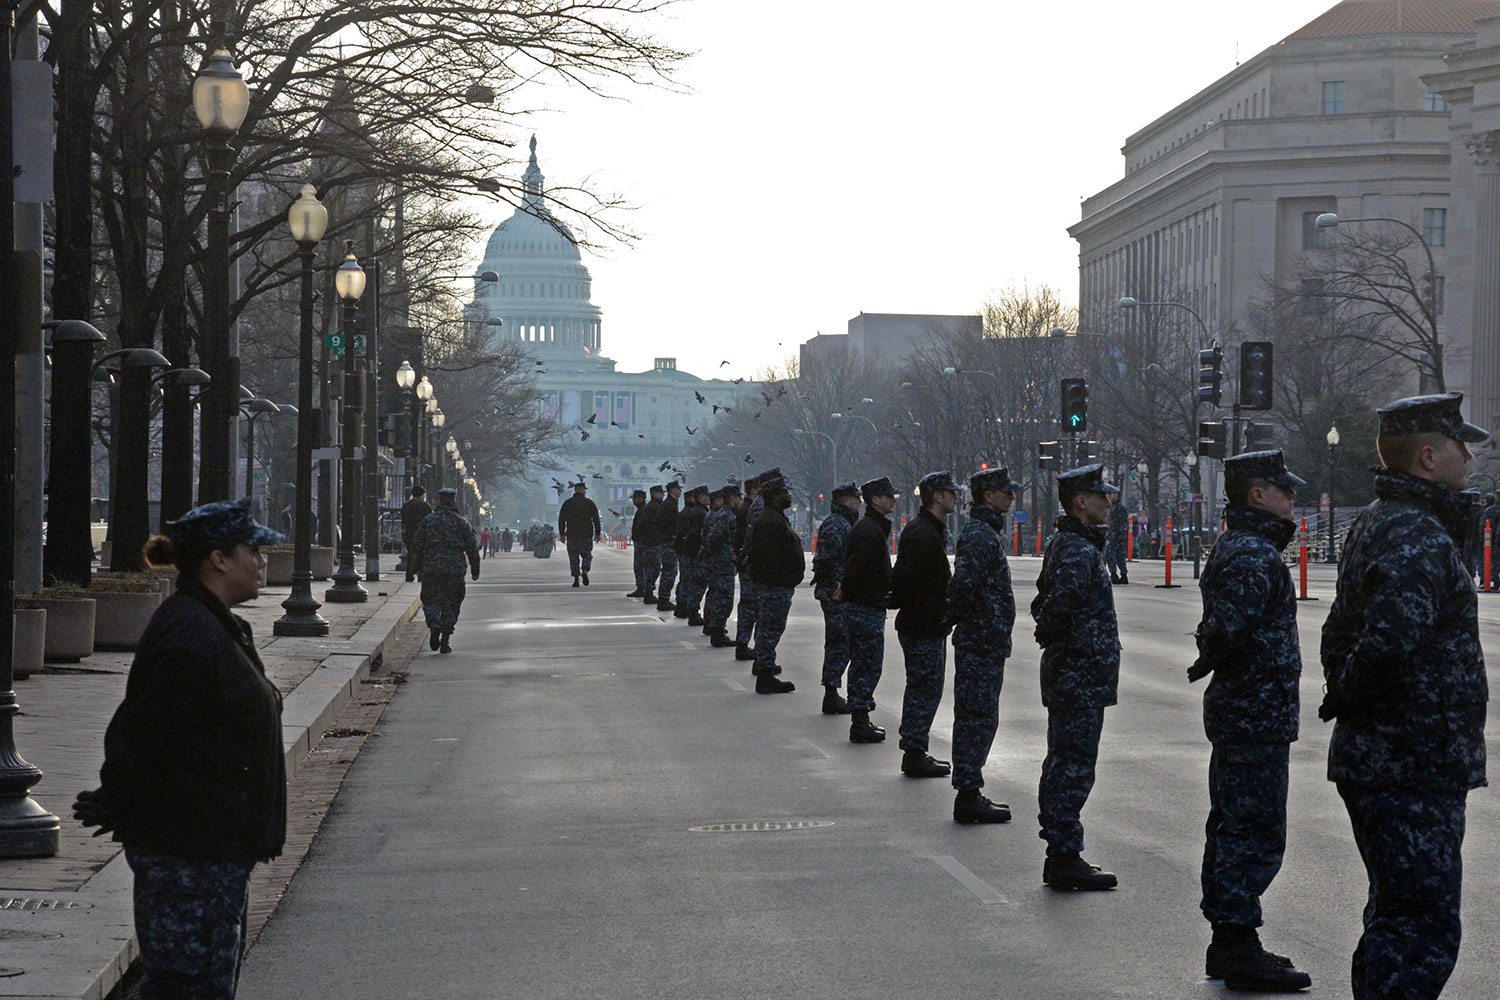 Members of the Joint Honor Guard stand at attention during a early morning rehearsal for the 58th Presidential Inauguration in Washington D.C. The rehearsal was held on Jan. 15, 2017, the Sunday before the inauguration. (Photo by Jonathan (Jay) Koester / NCO Journal)